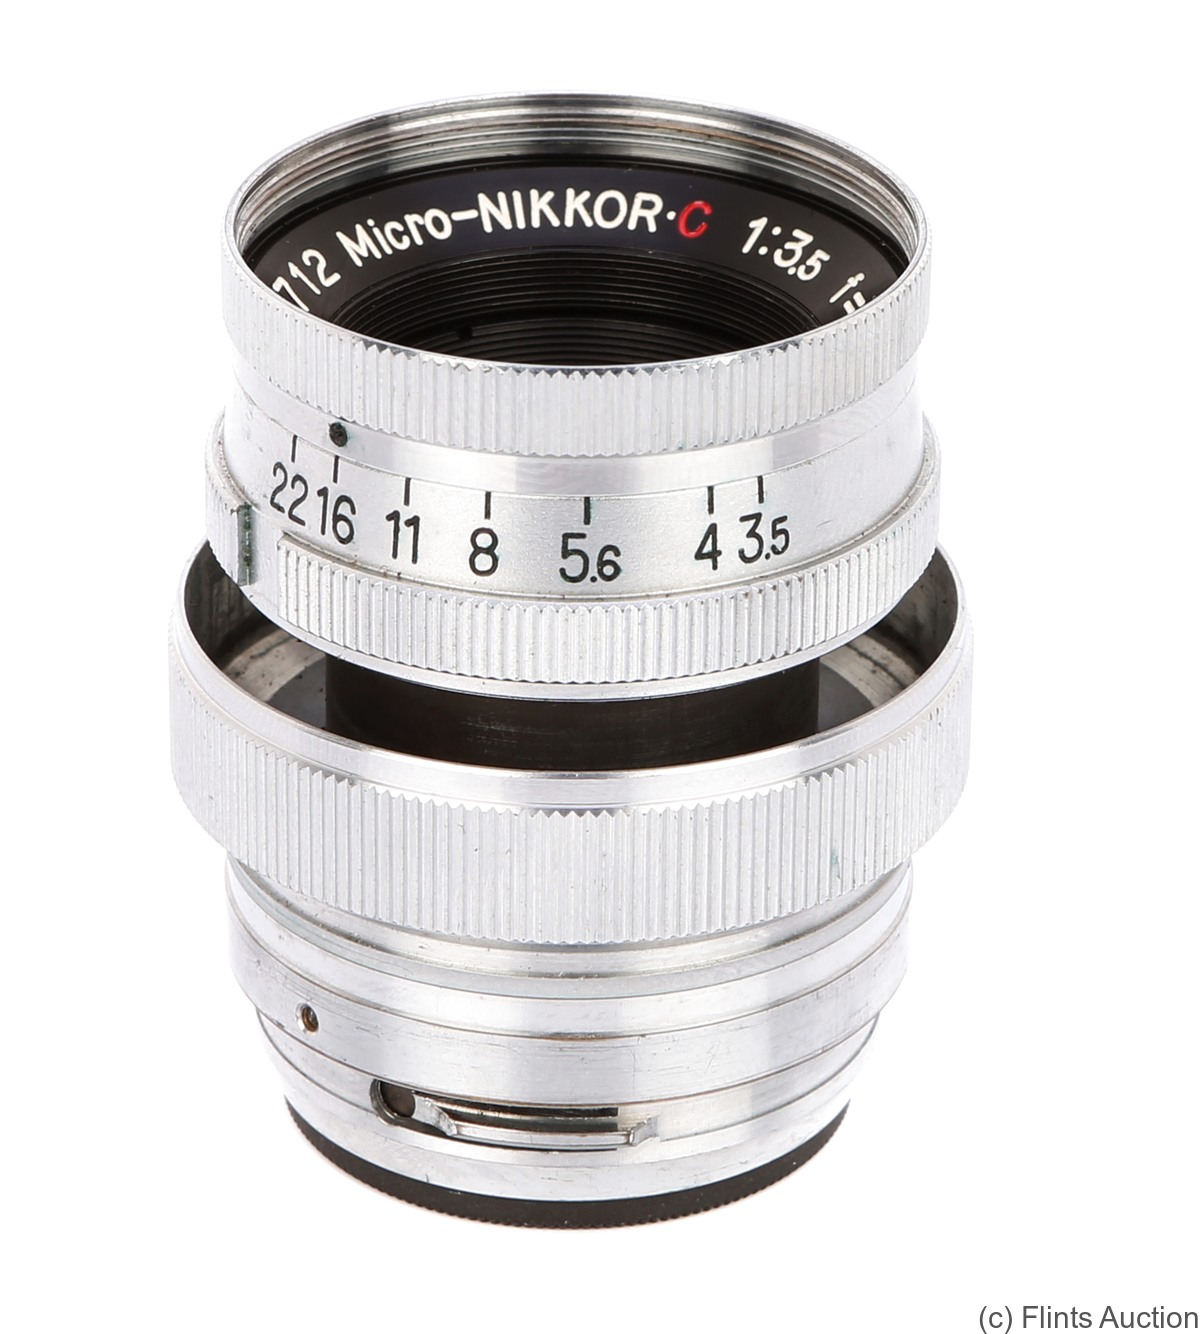 Nikon: 50mm (5cm) f3.5 Micro-Nikkor-C (chrome) camera